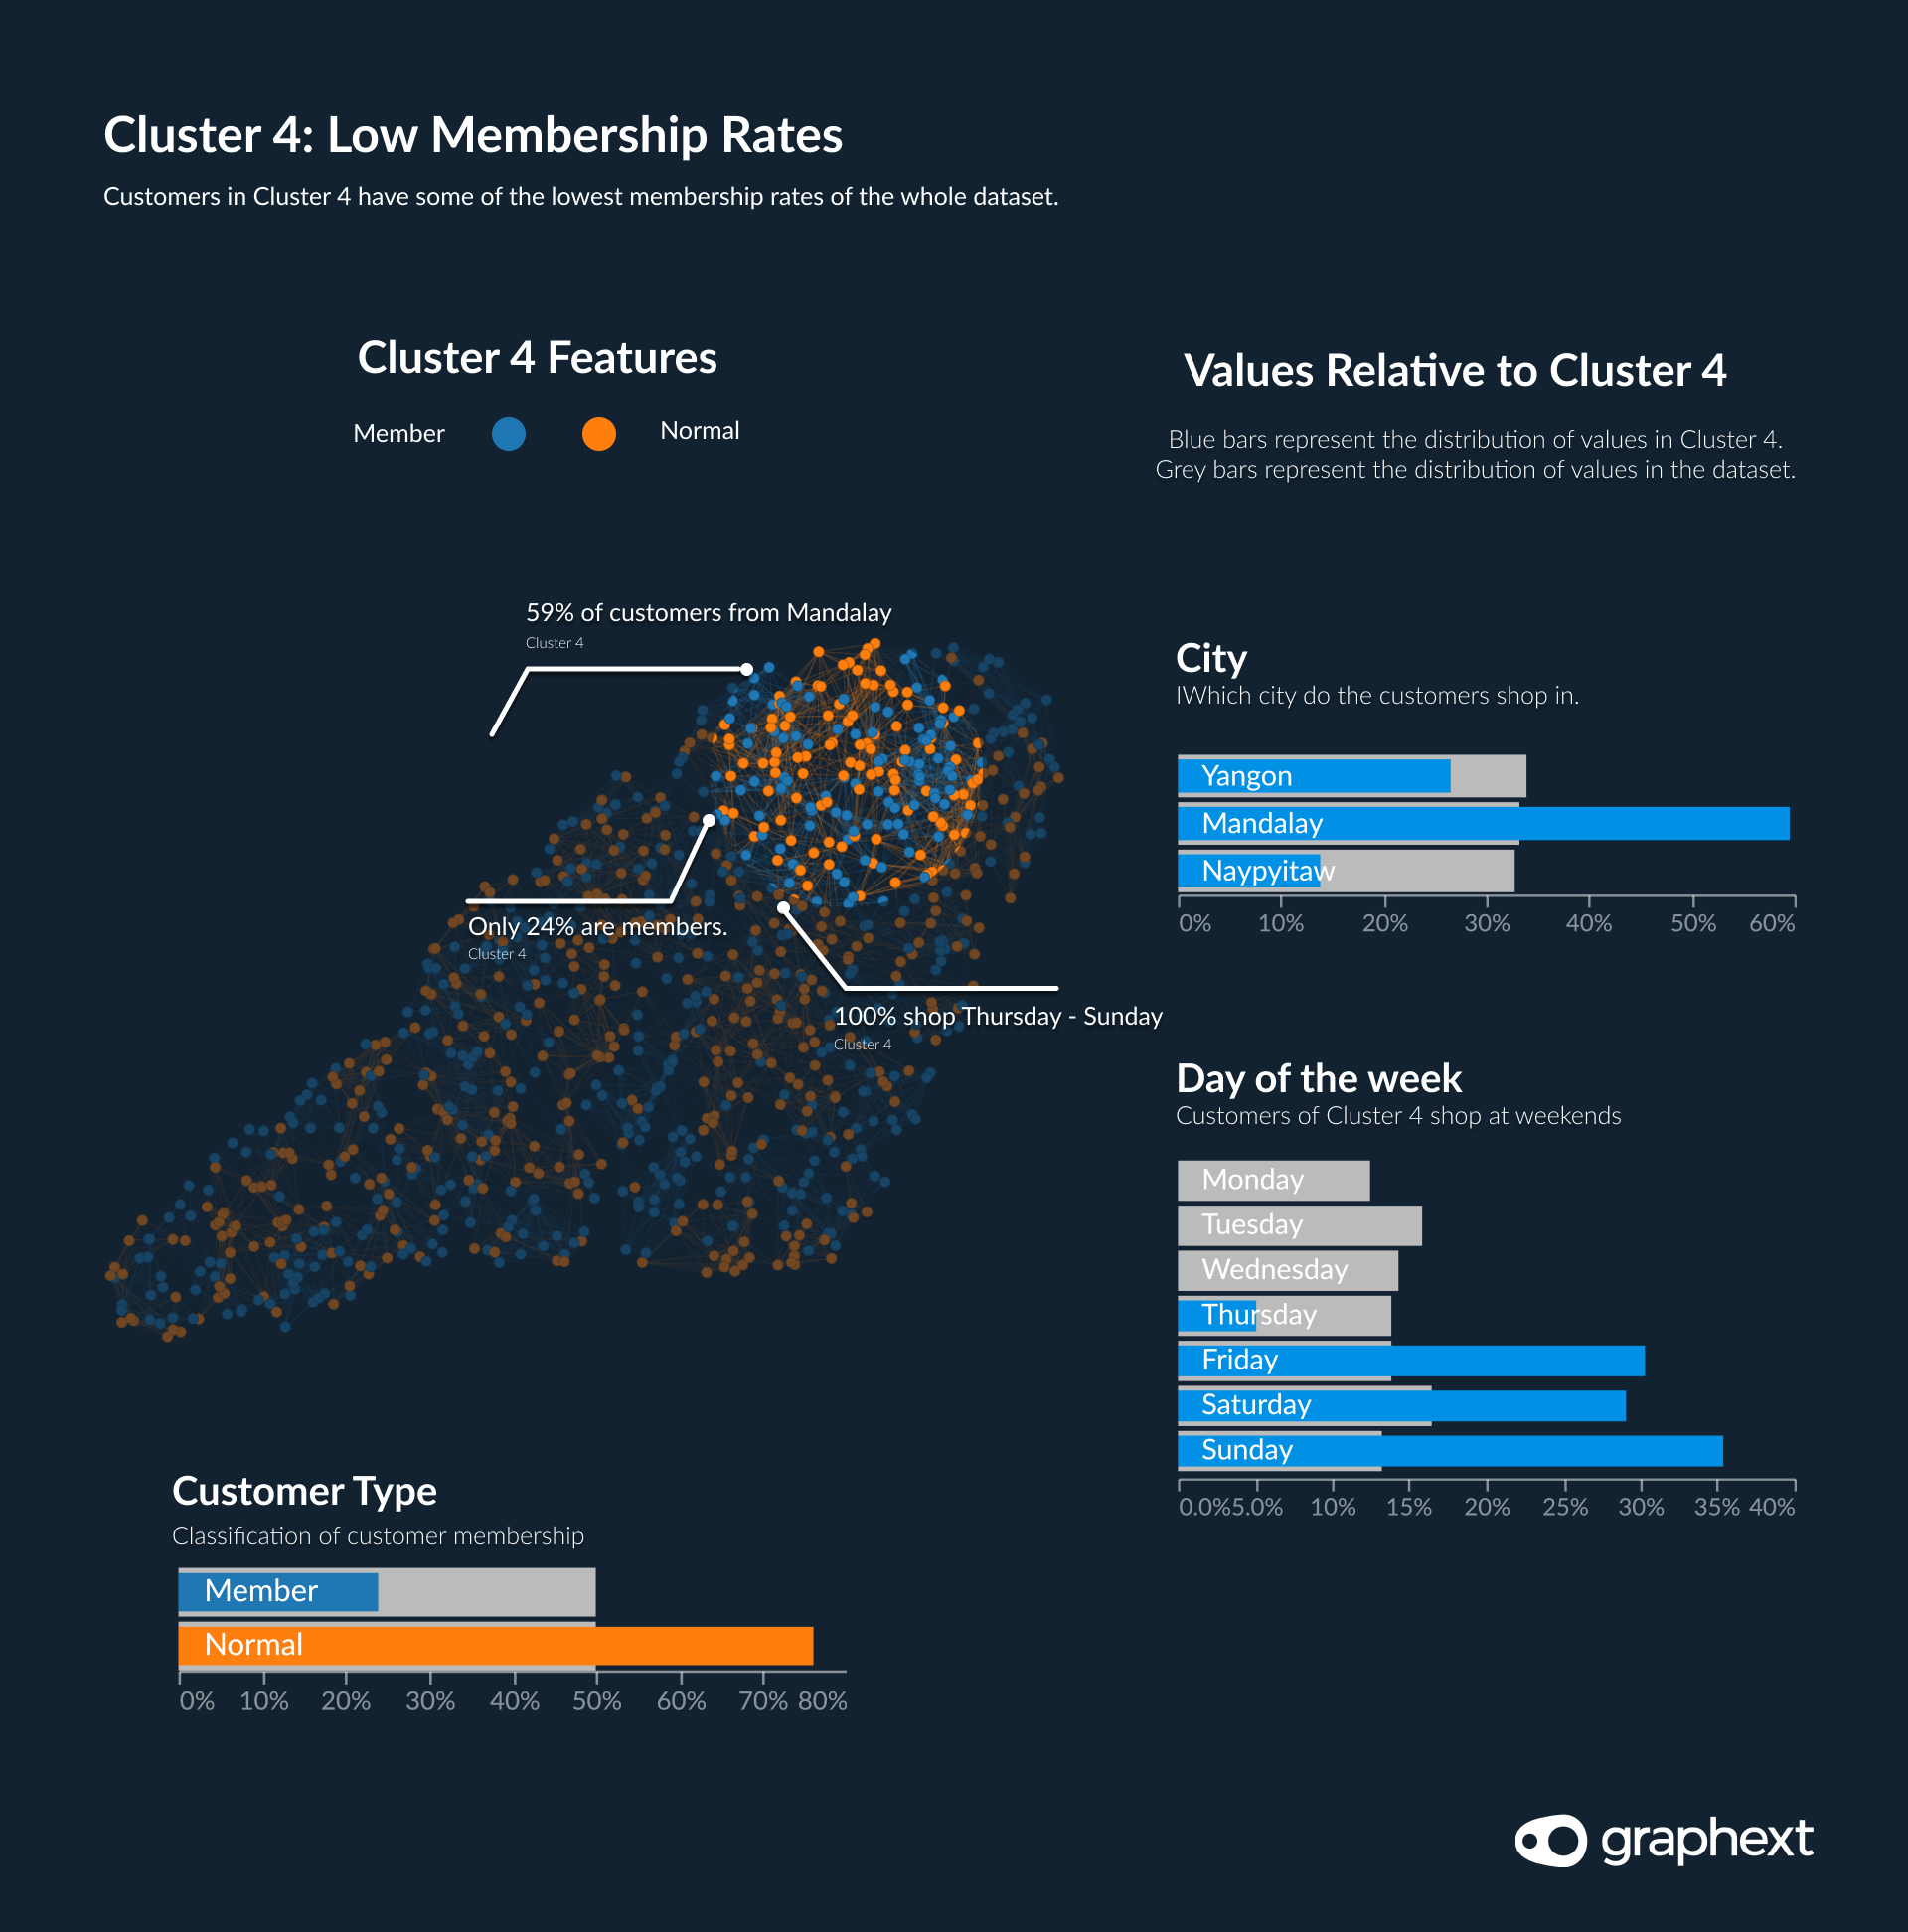 Data highlighting that customers in cluster 4 have the lowest membership rates in the data.